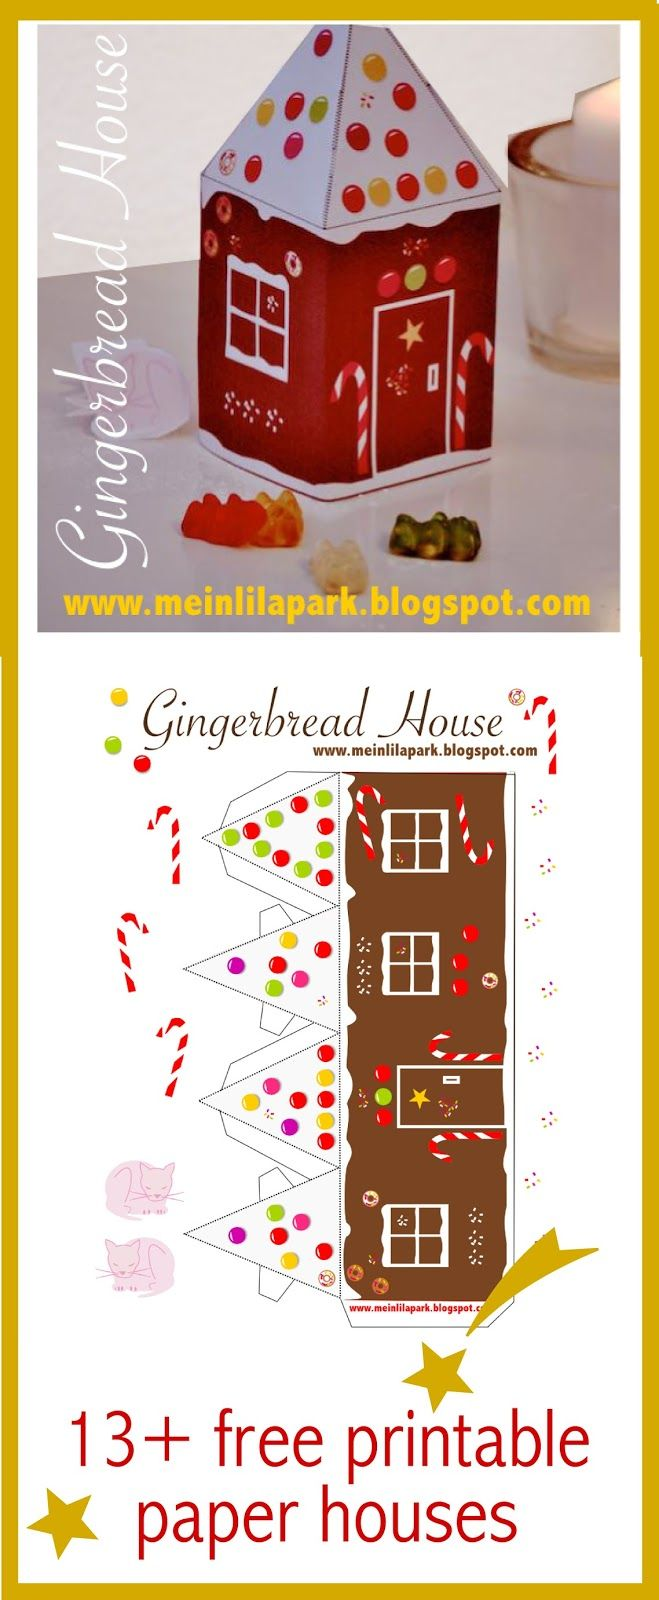 png und clipart ♥ free digital and printable png's and ...